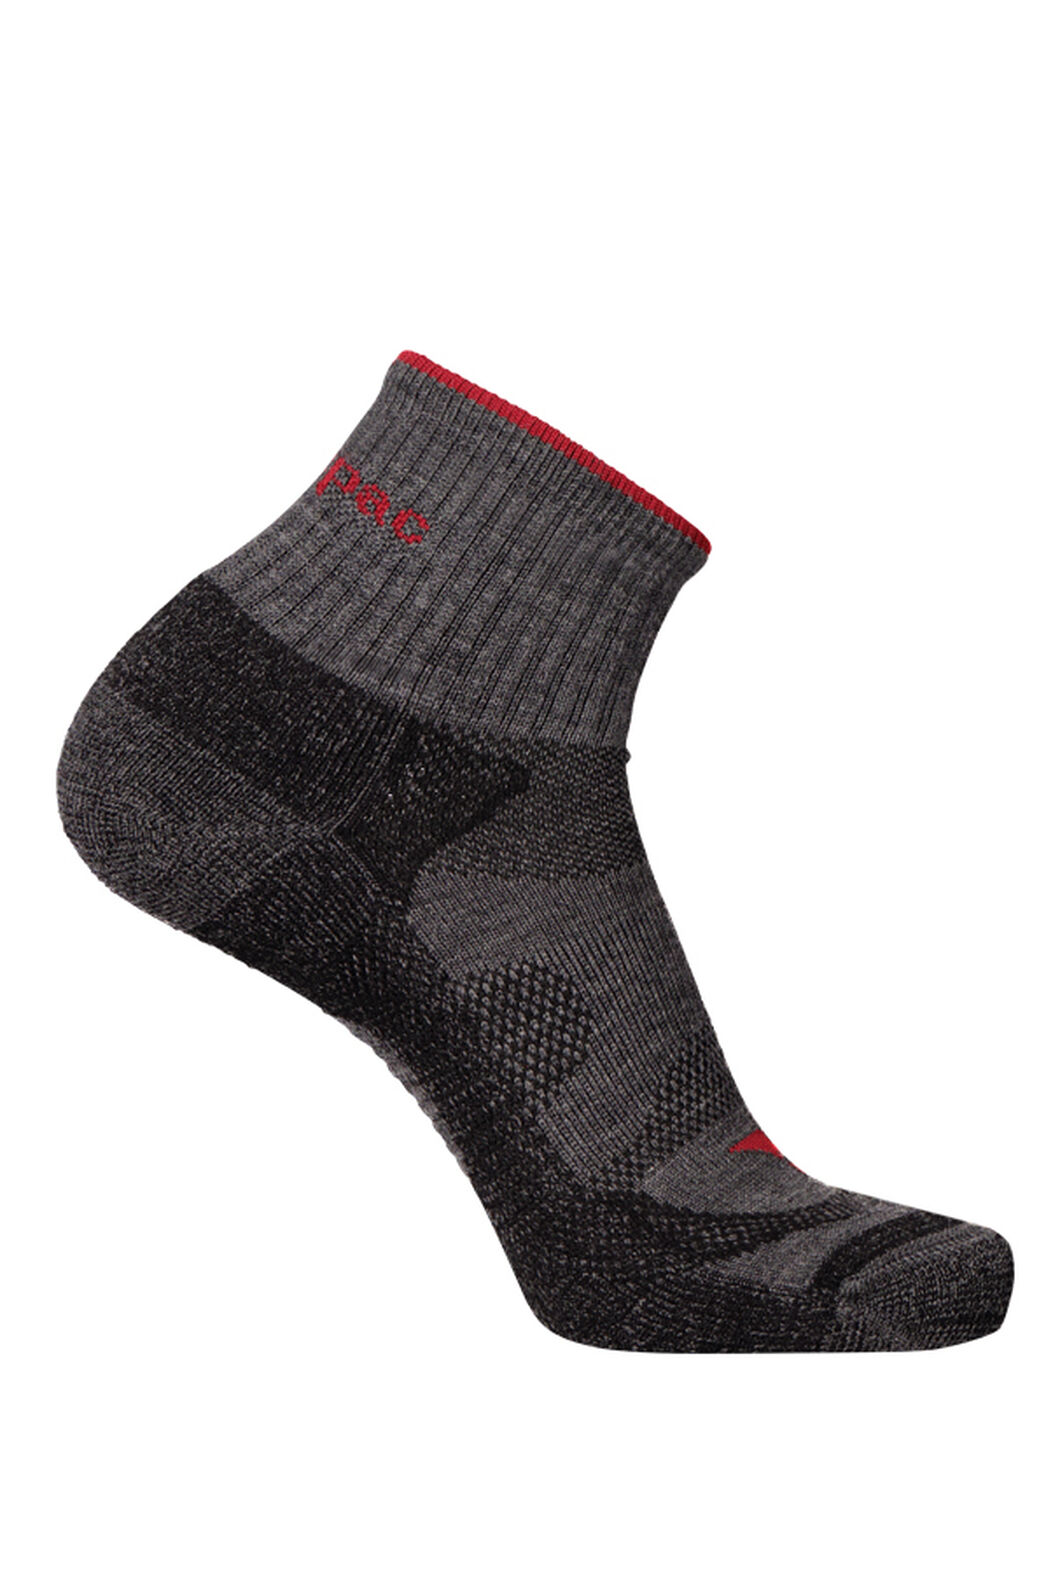 Macpac Merino Quarter Socks, Forged Iron Melange, hi-res